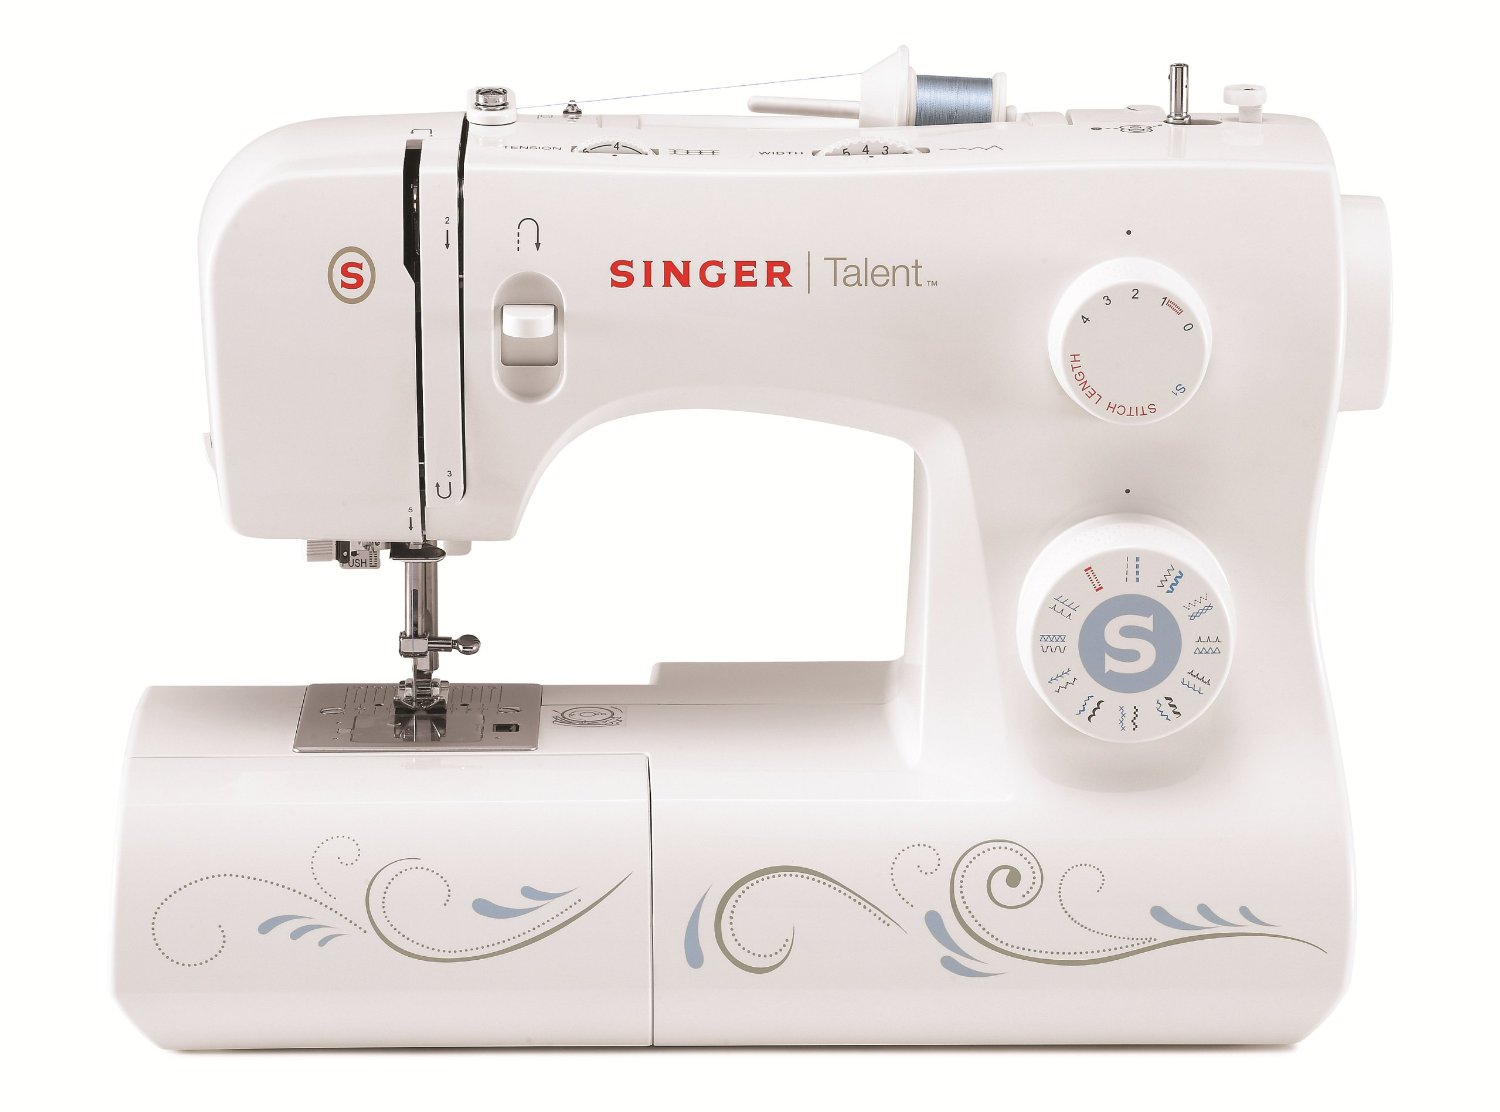 SINGER 3323S Portable Sewing Machine